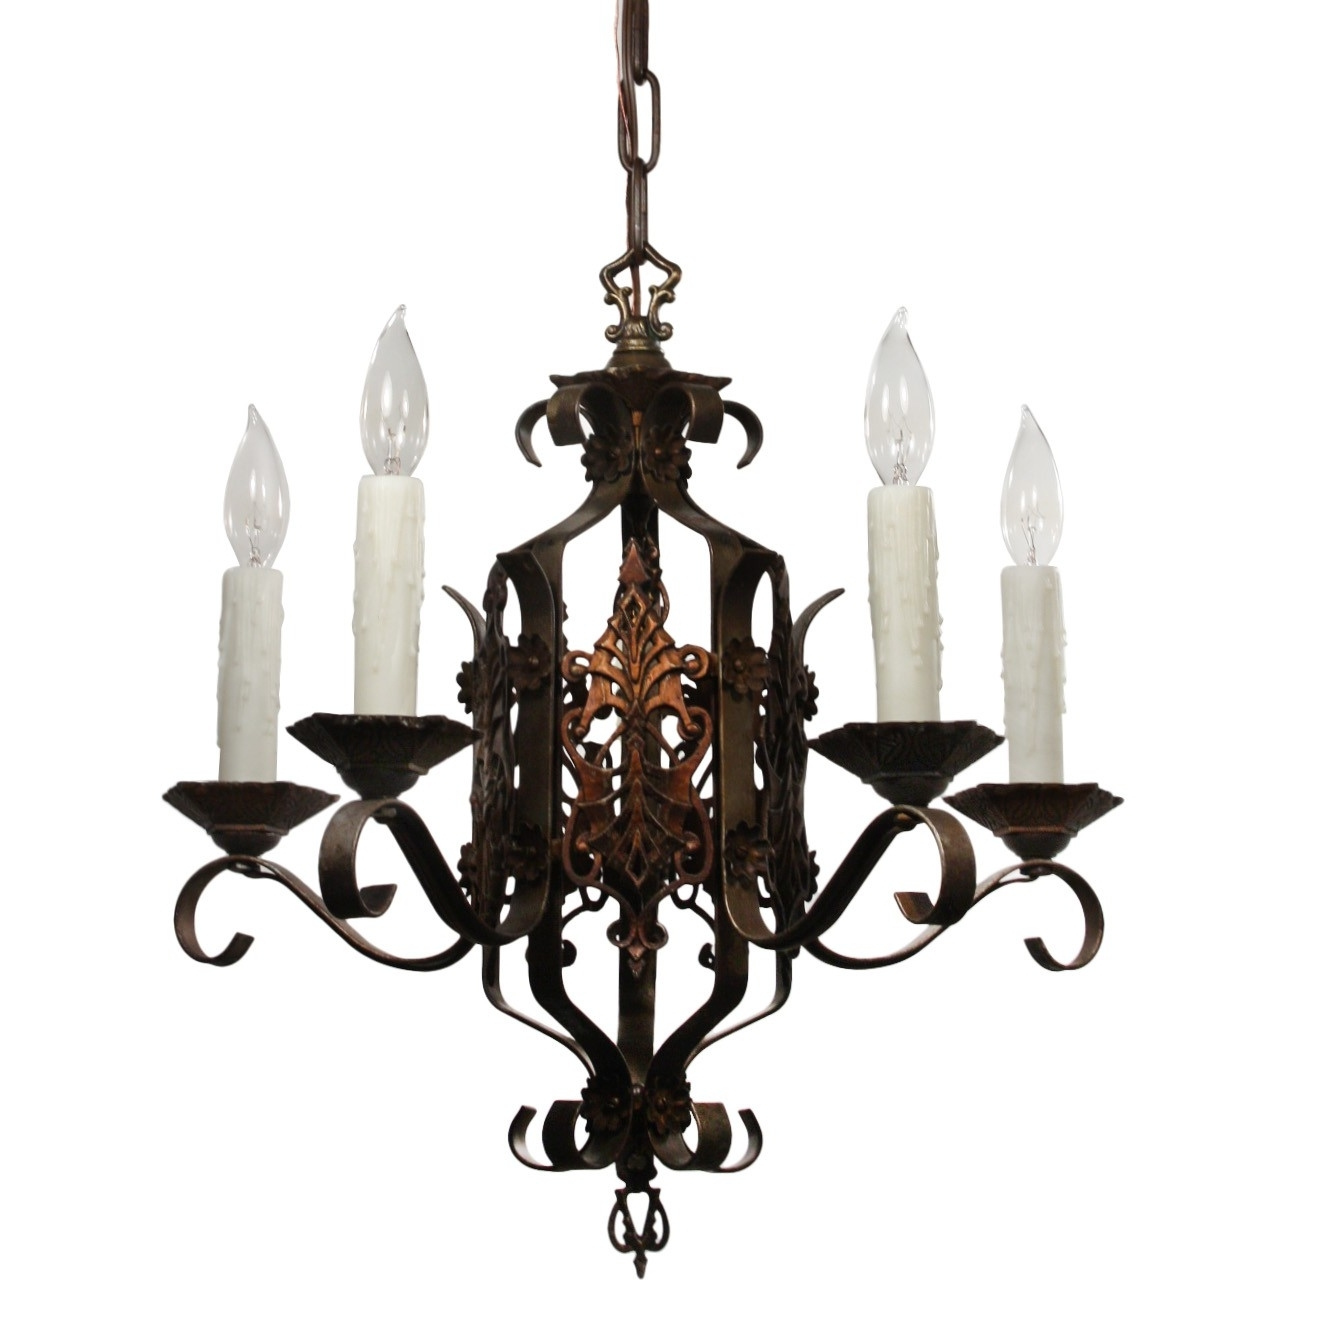 Latest Wrought Iron Chandelier Within Tudor Wrought Iron Chandelier, Antique Lighting – Preservation (View 3 of 20)